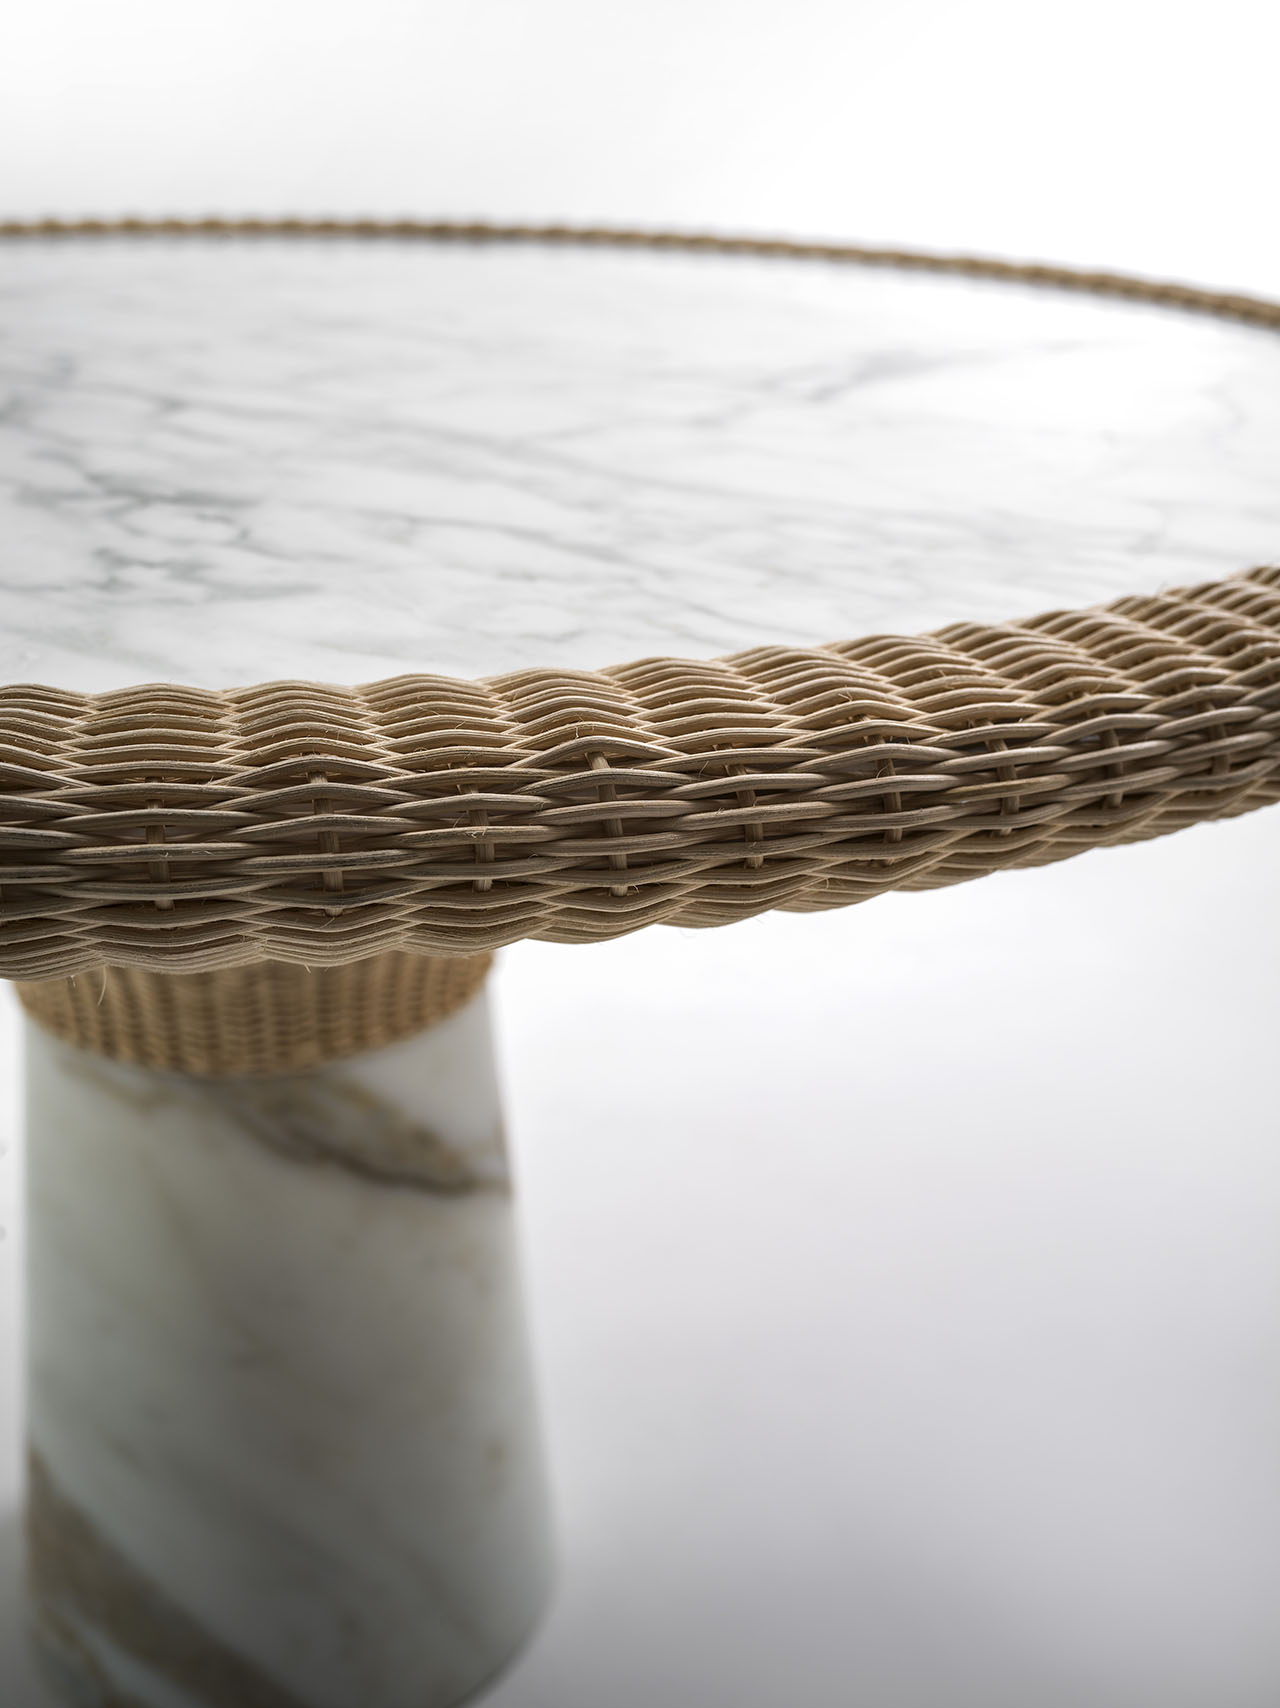 Amazonas collection made of marble & wicker, designed by Giorgio Bonaguro for Morfosi.